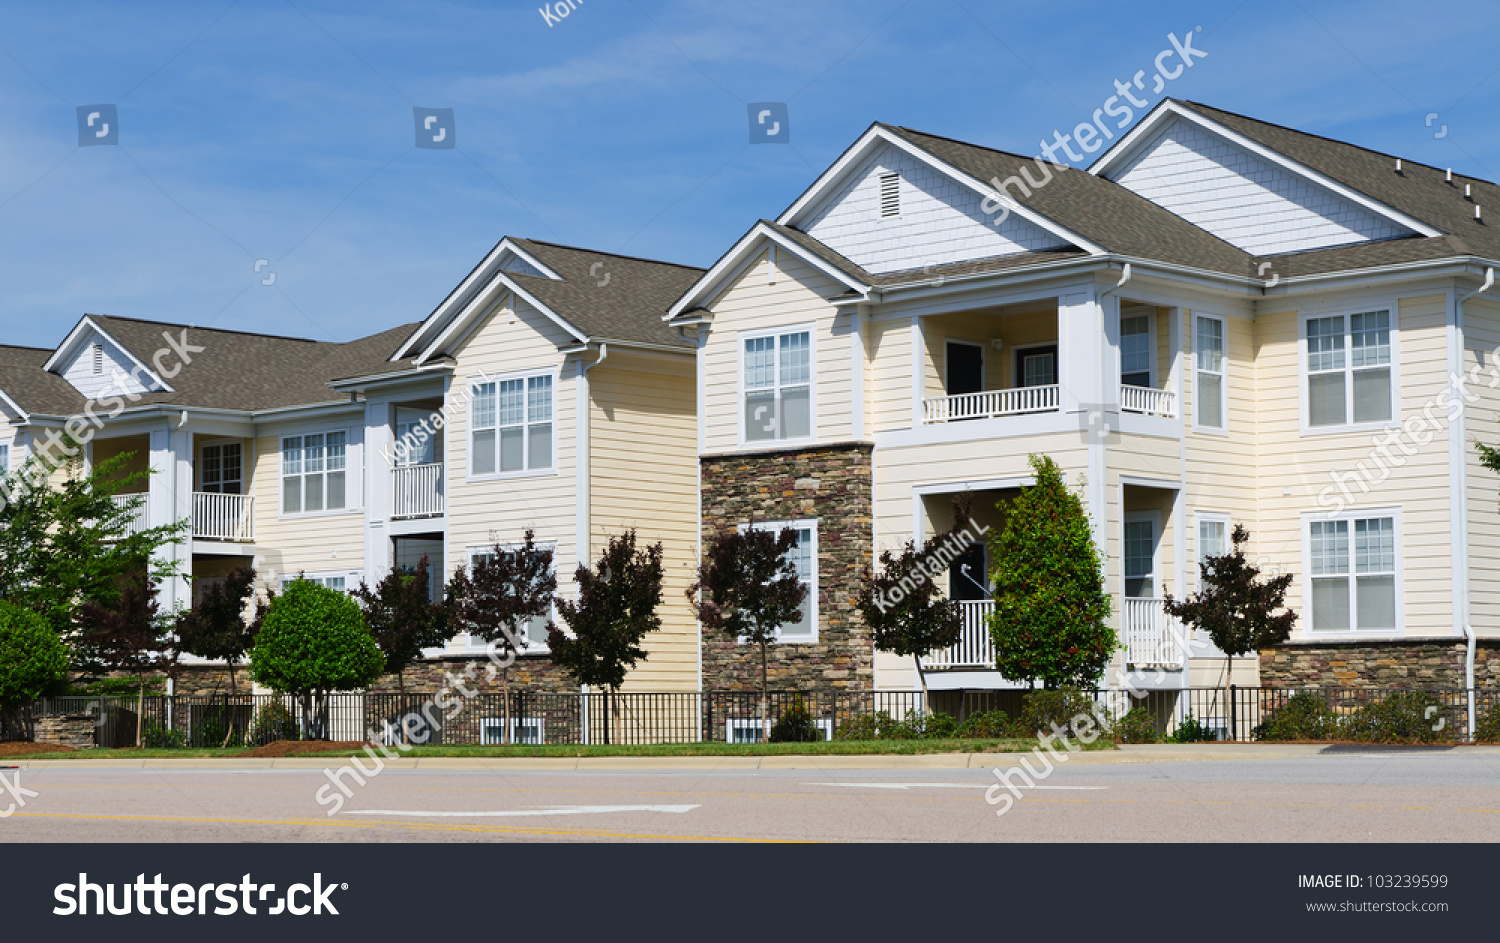 Typical apartment complex building suburban area stock for American housing builders